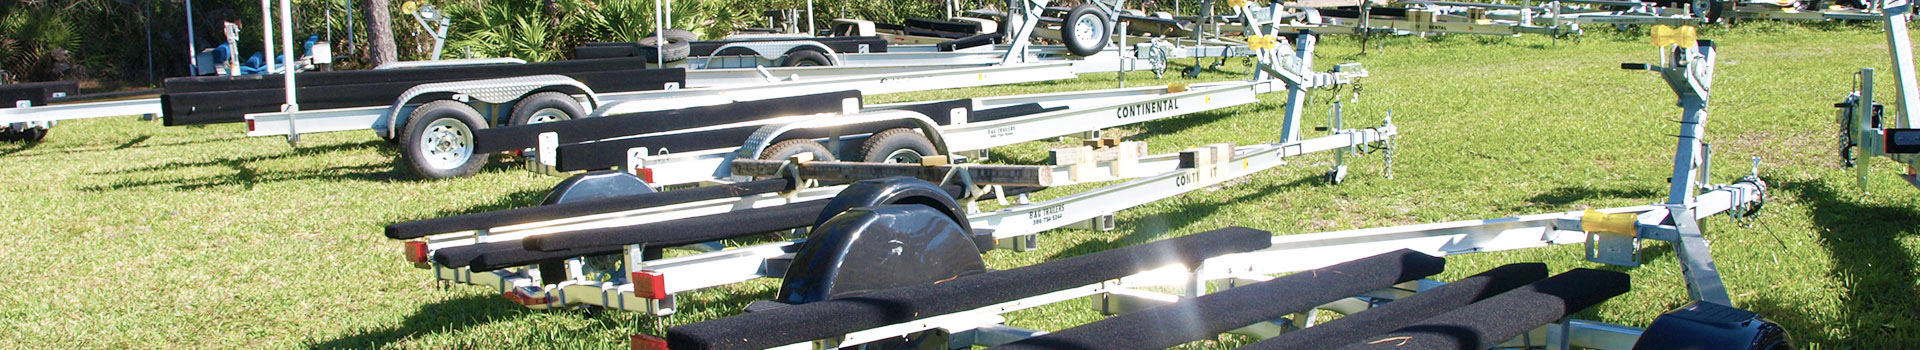 double and single axle boat trailers